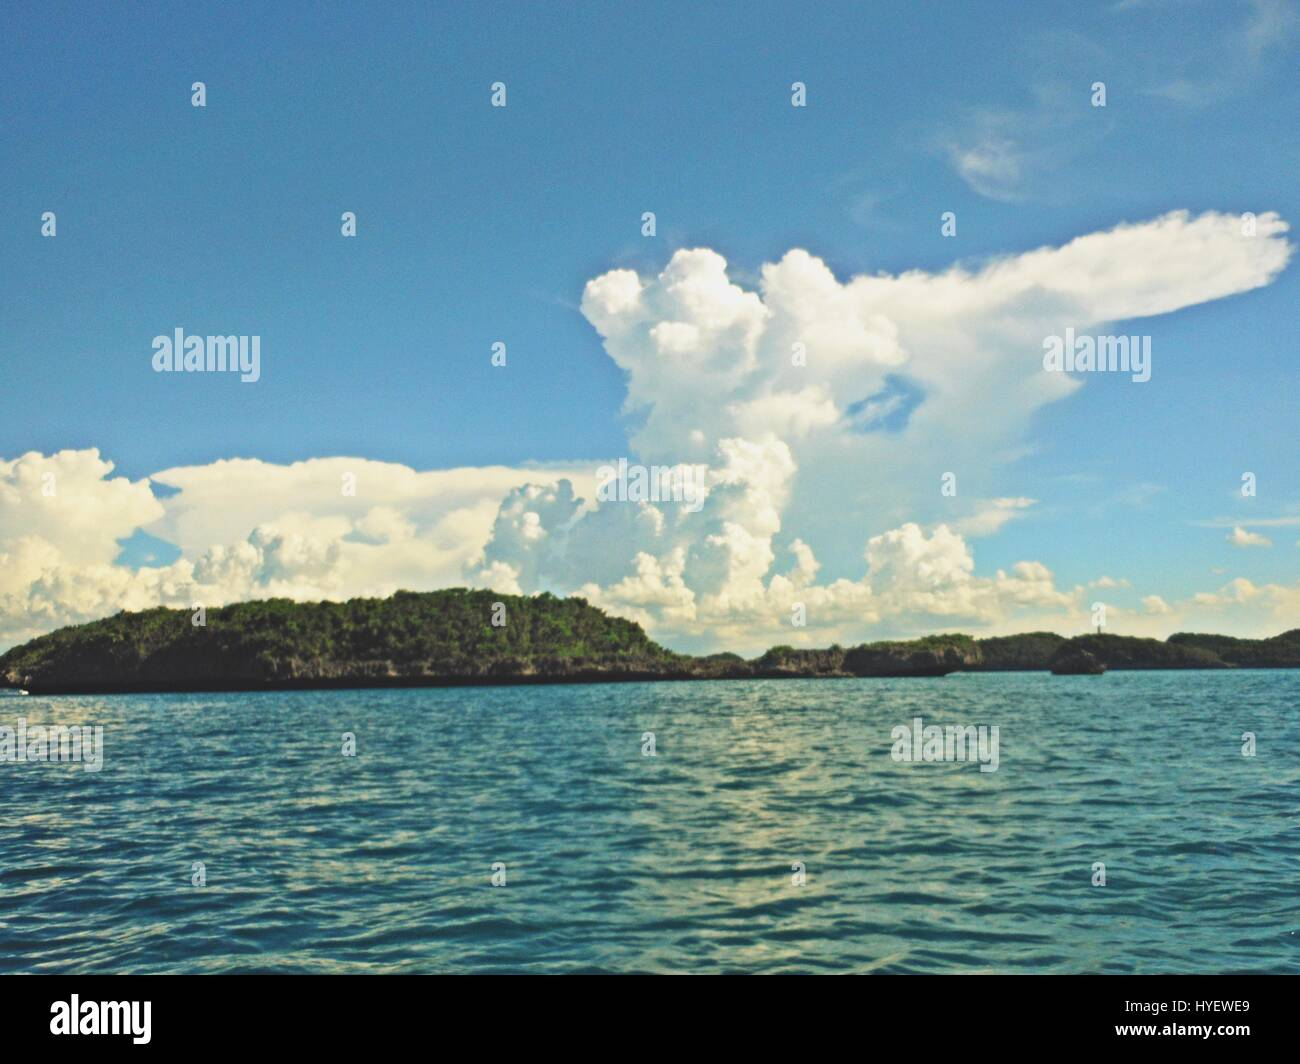 tiny islands in the sea with an unusual cloud formation in the skies in Alaminos, Pangasinan. Philippinbes - Stock Image